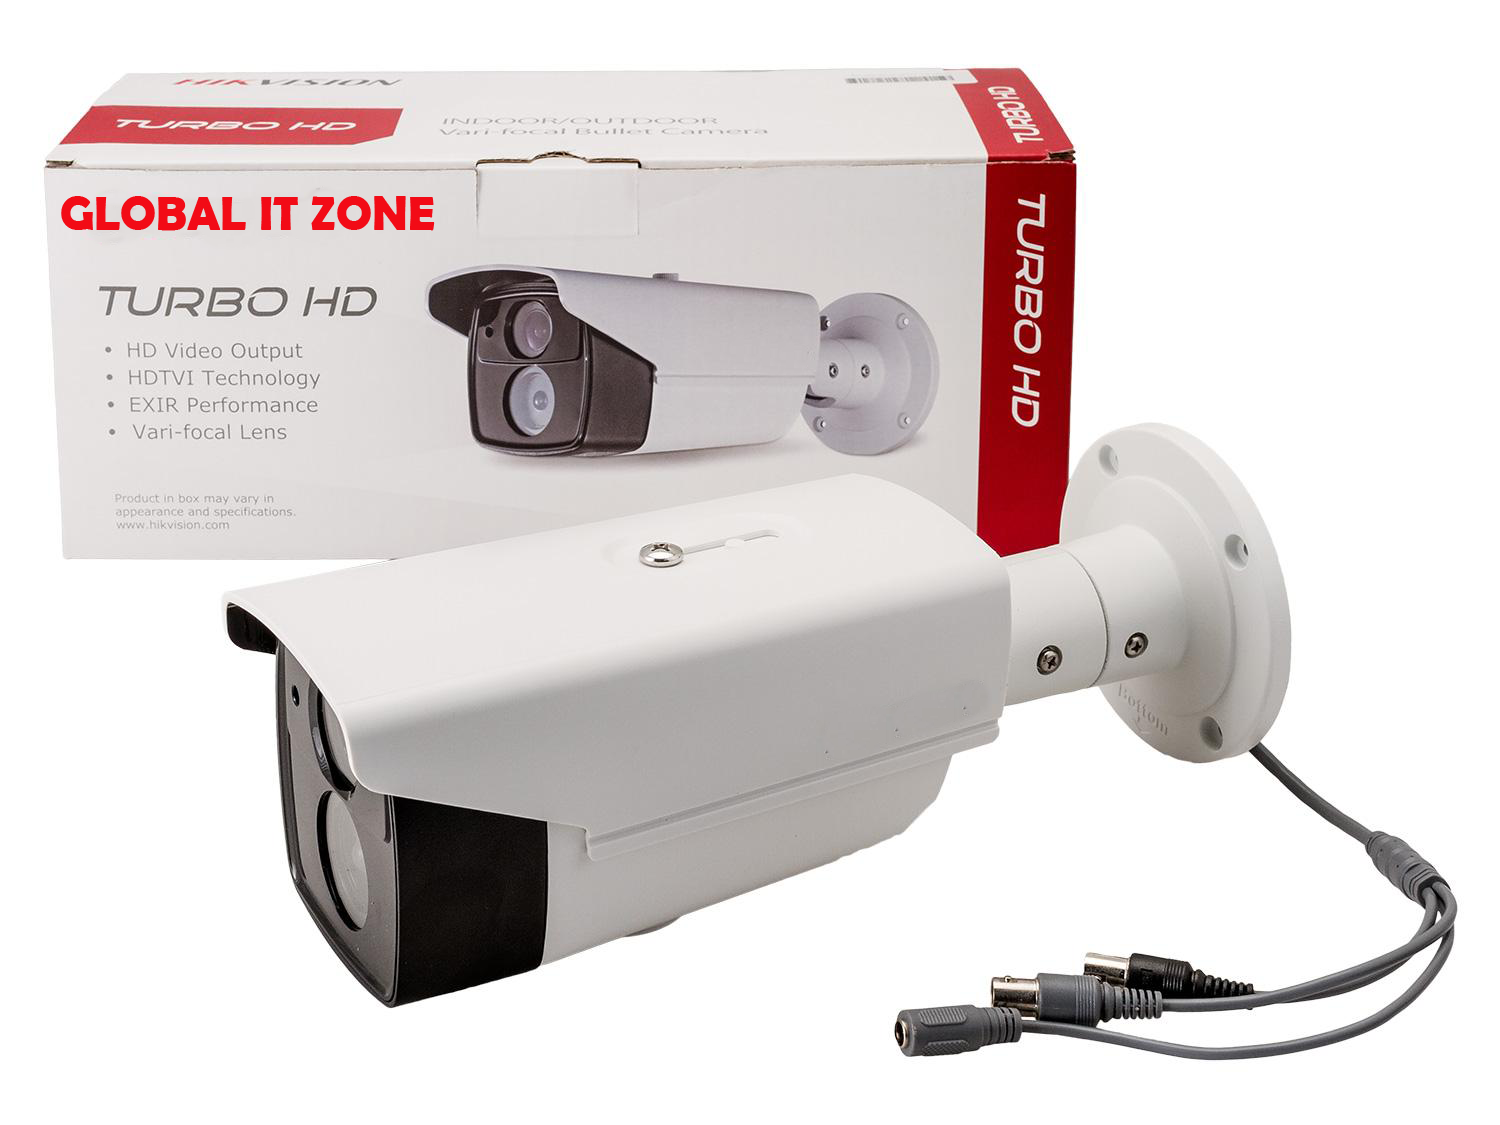 cctv camera price katihar, cctv camera price in katihar, dome camera Dealers